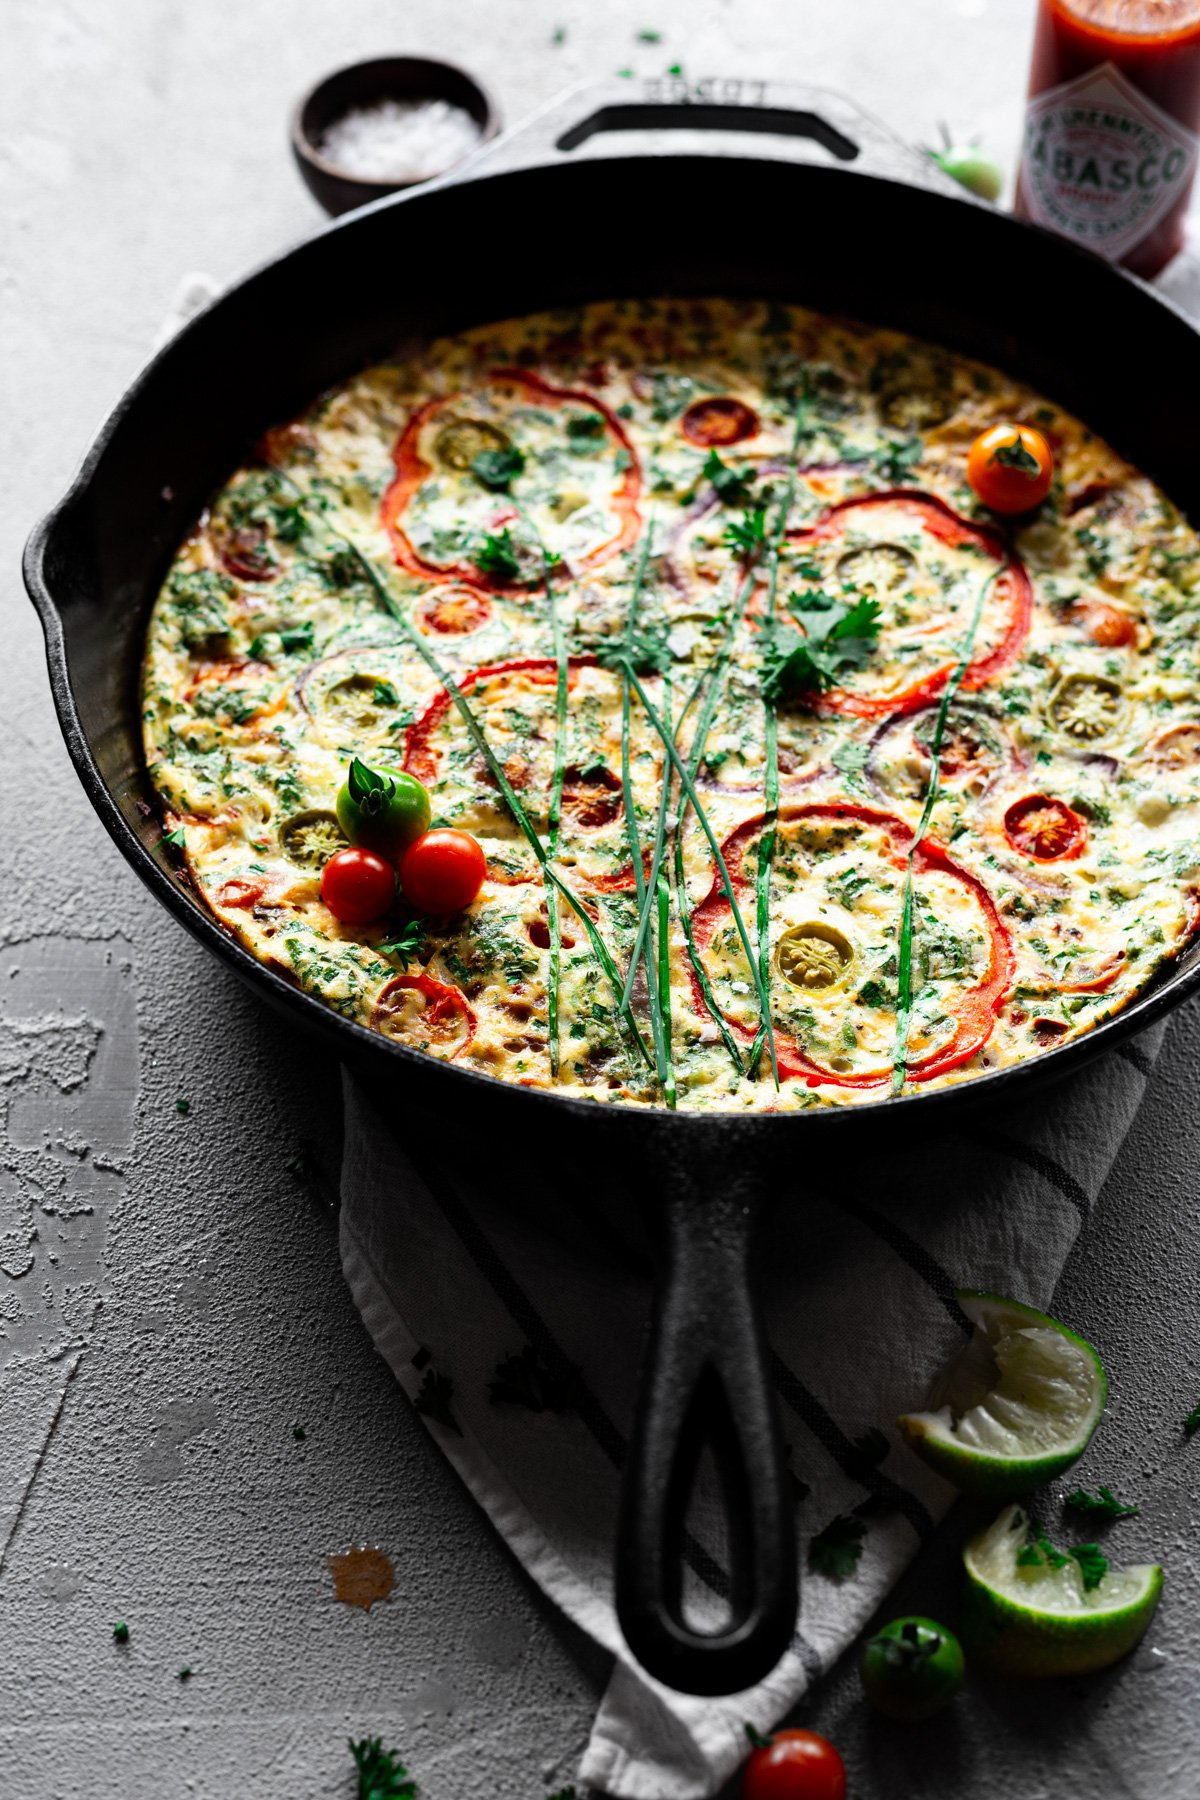 angled view of baked frittata recipe with veggies and herbs